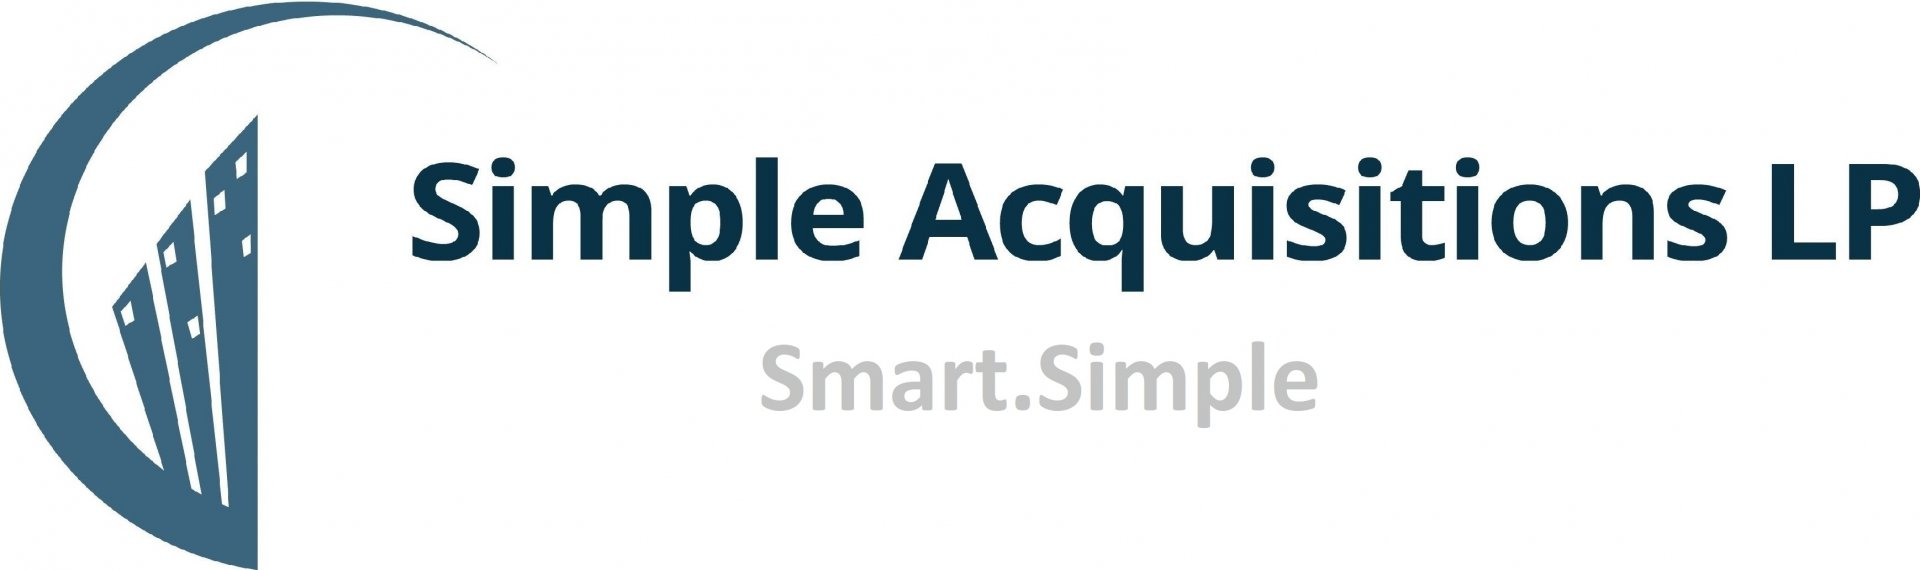 Simple Acquisitions LP logo